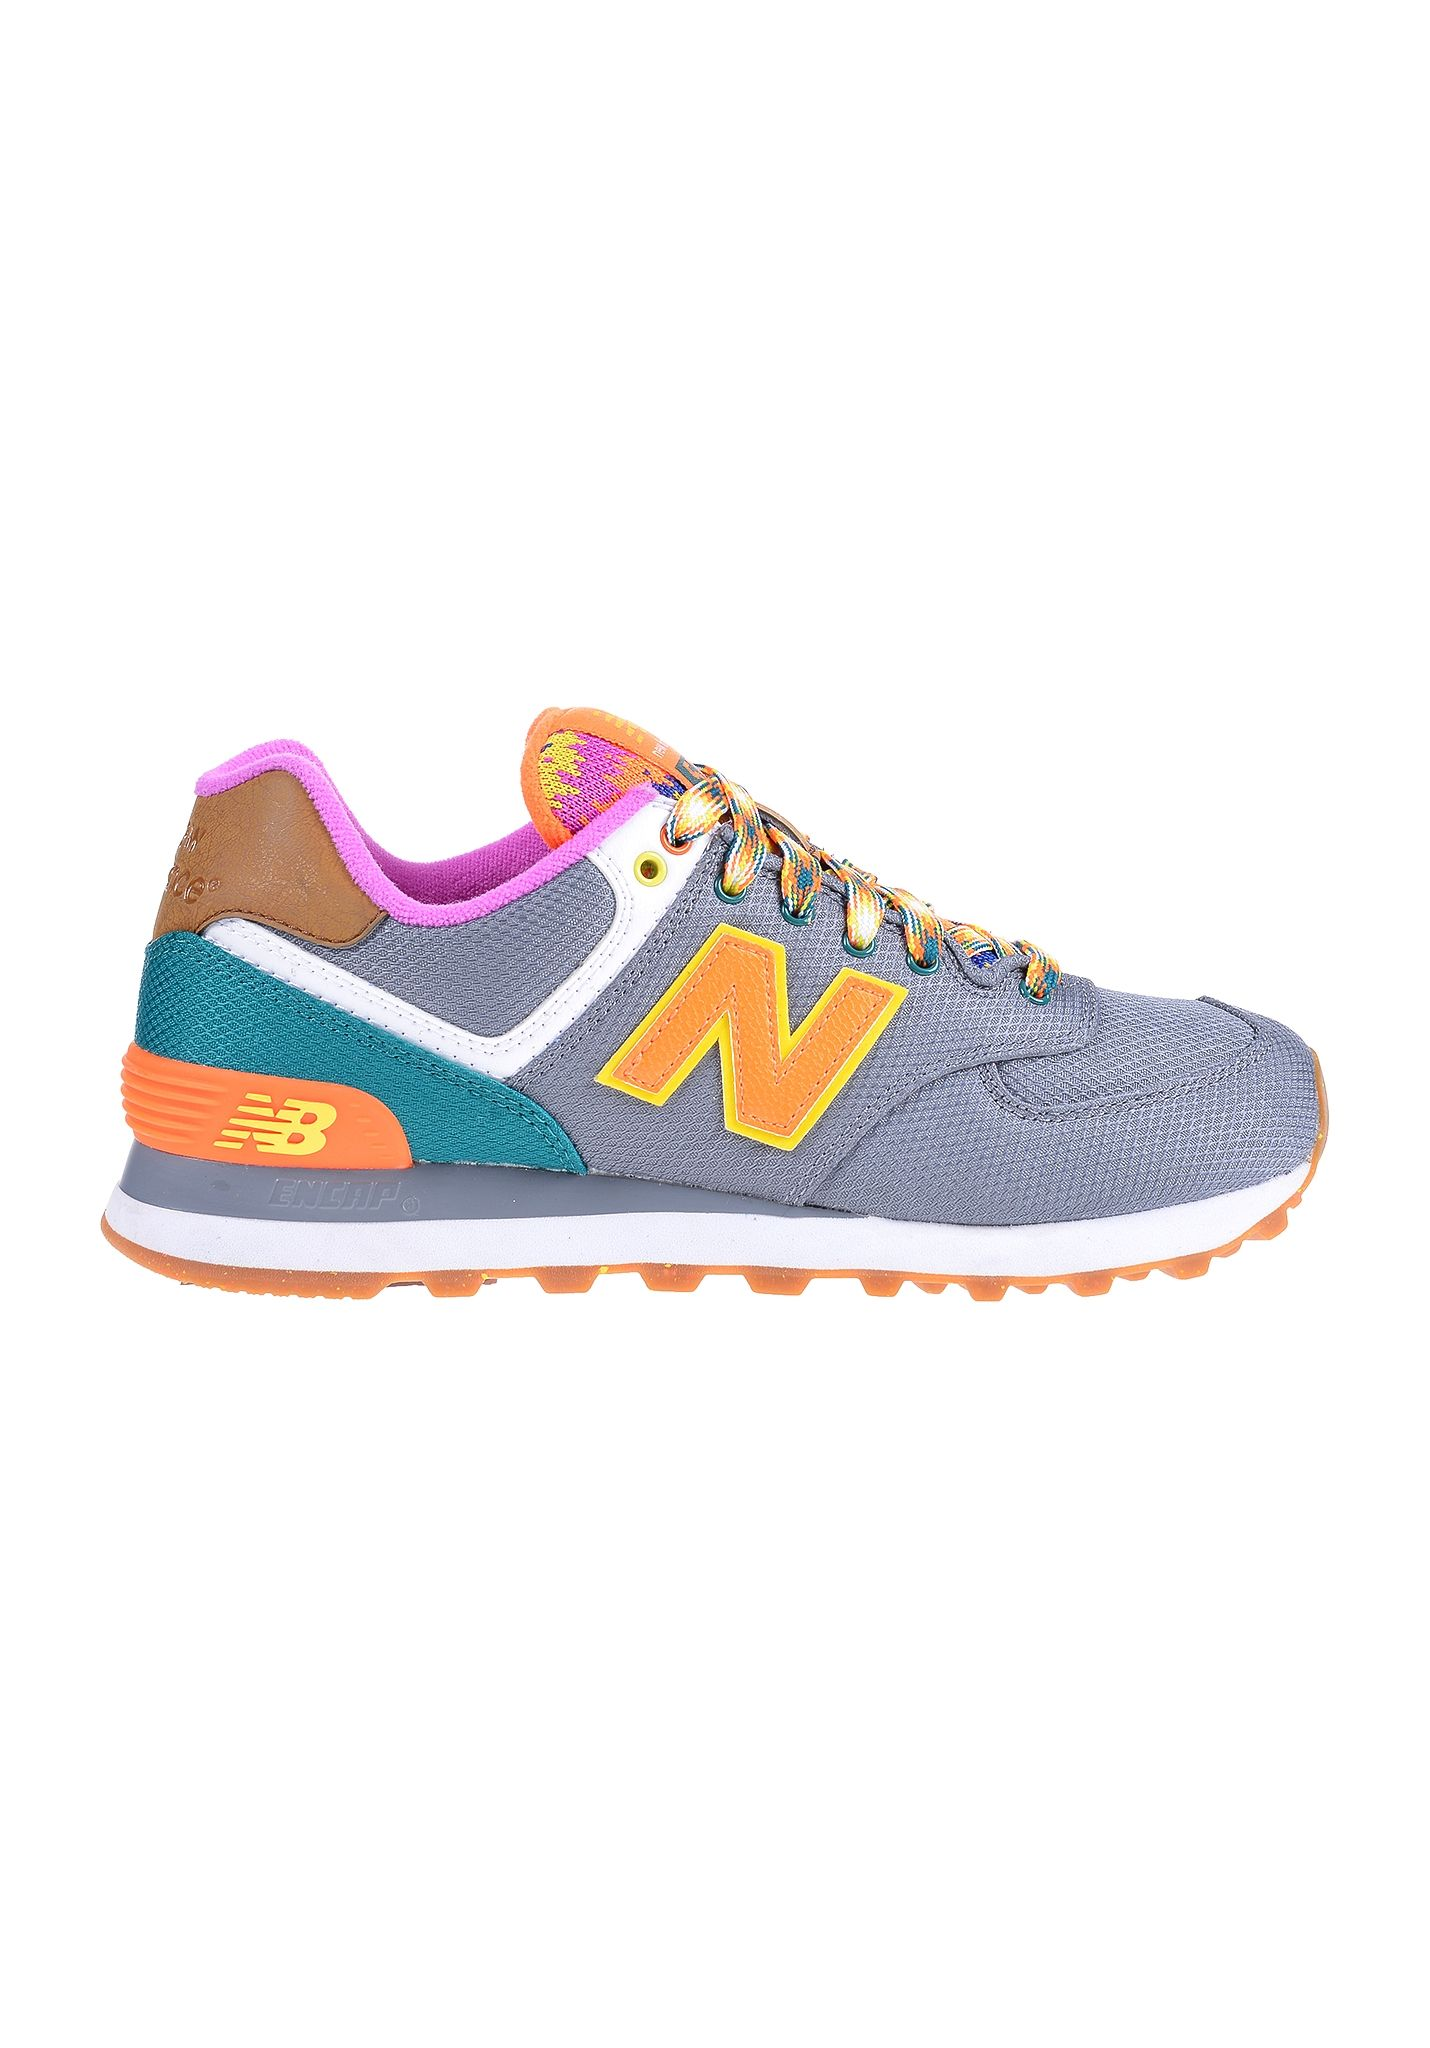 New Balance 574 Grise Orange